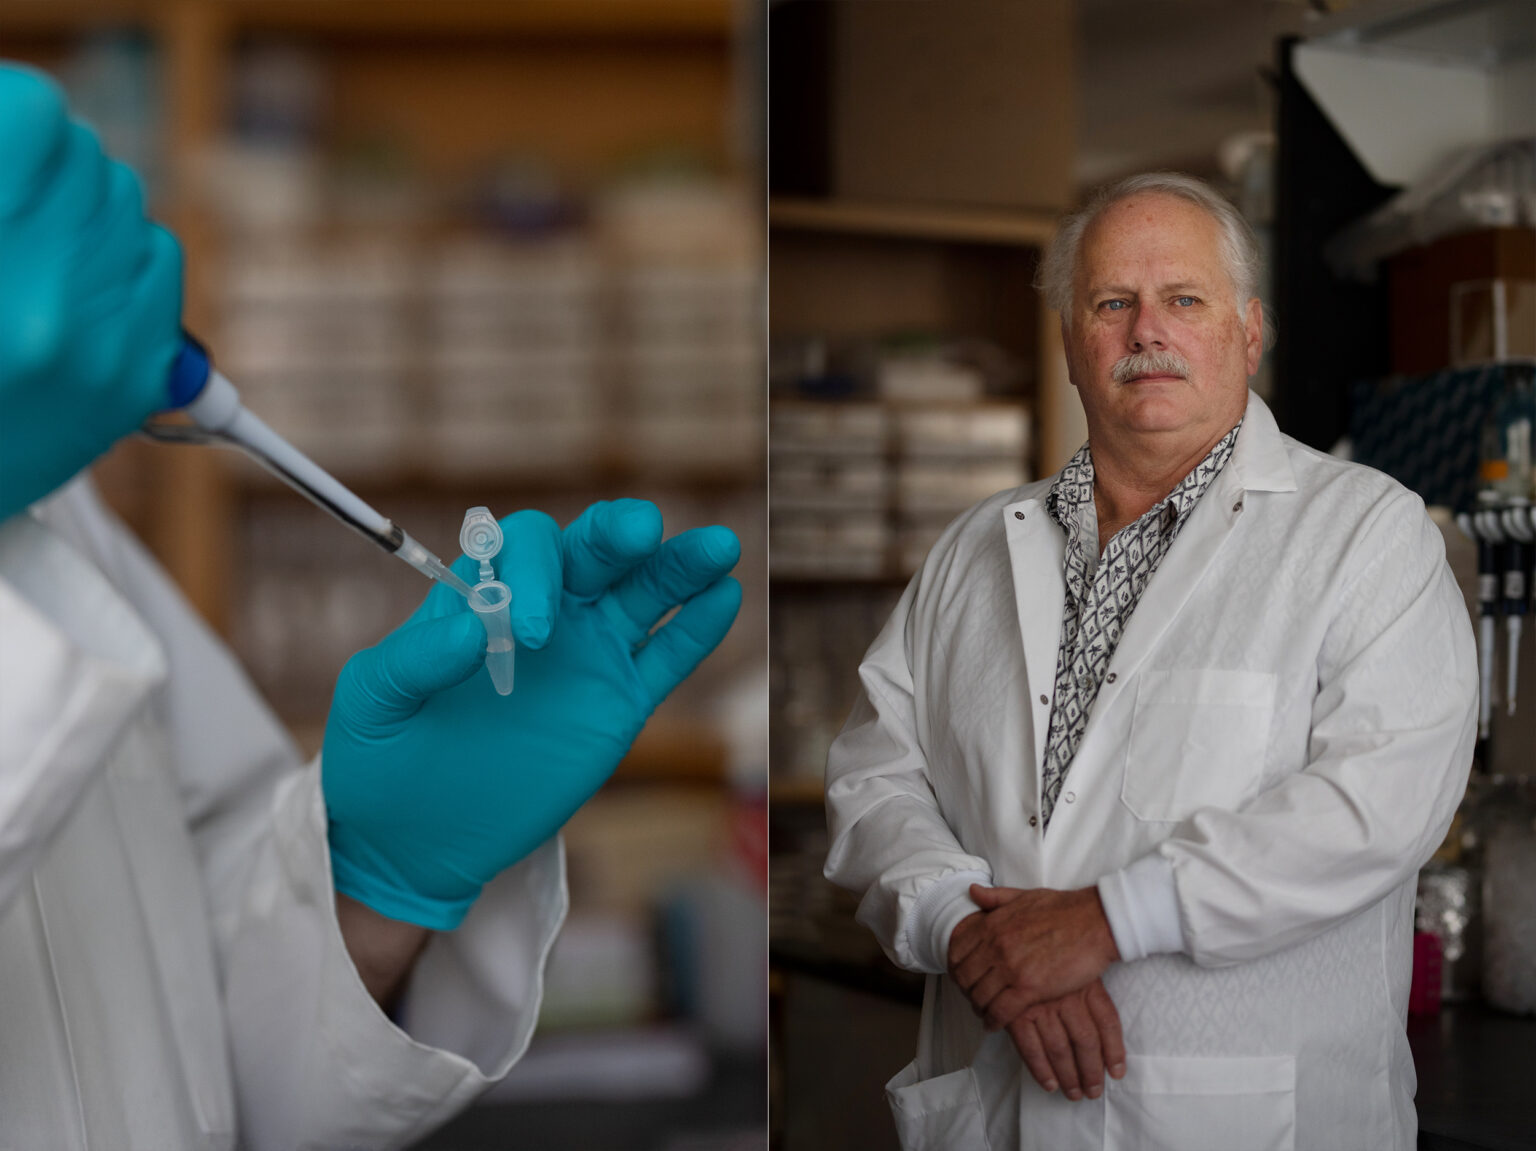 On the left, a research puts a sample in a vile. On the right, Ralph Baric poses for a photo in his lab.